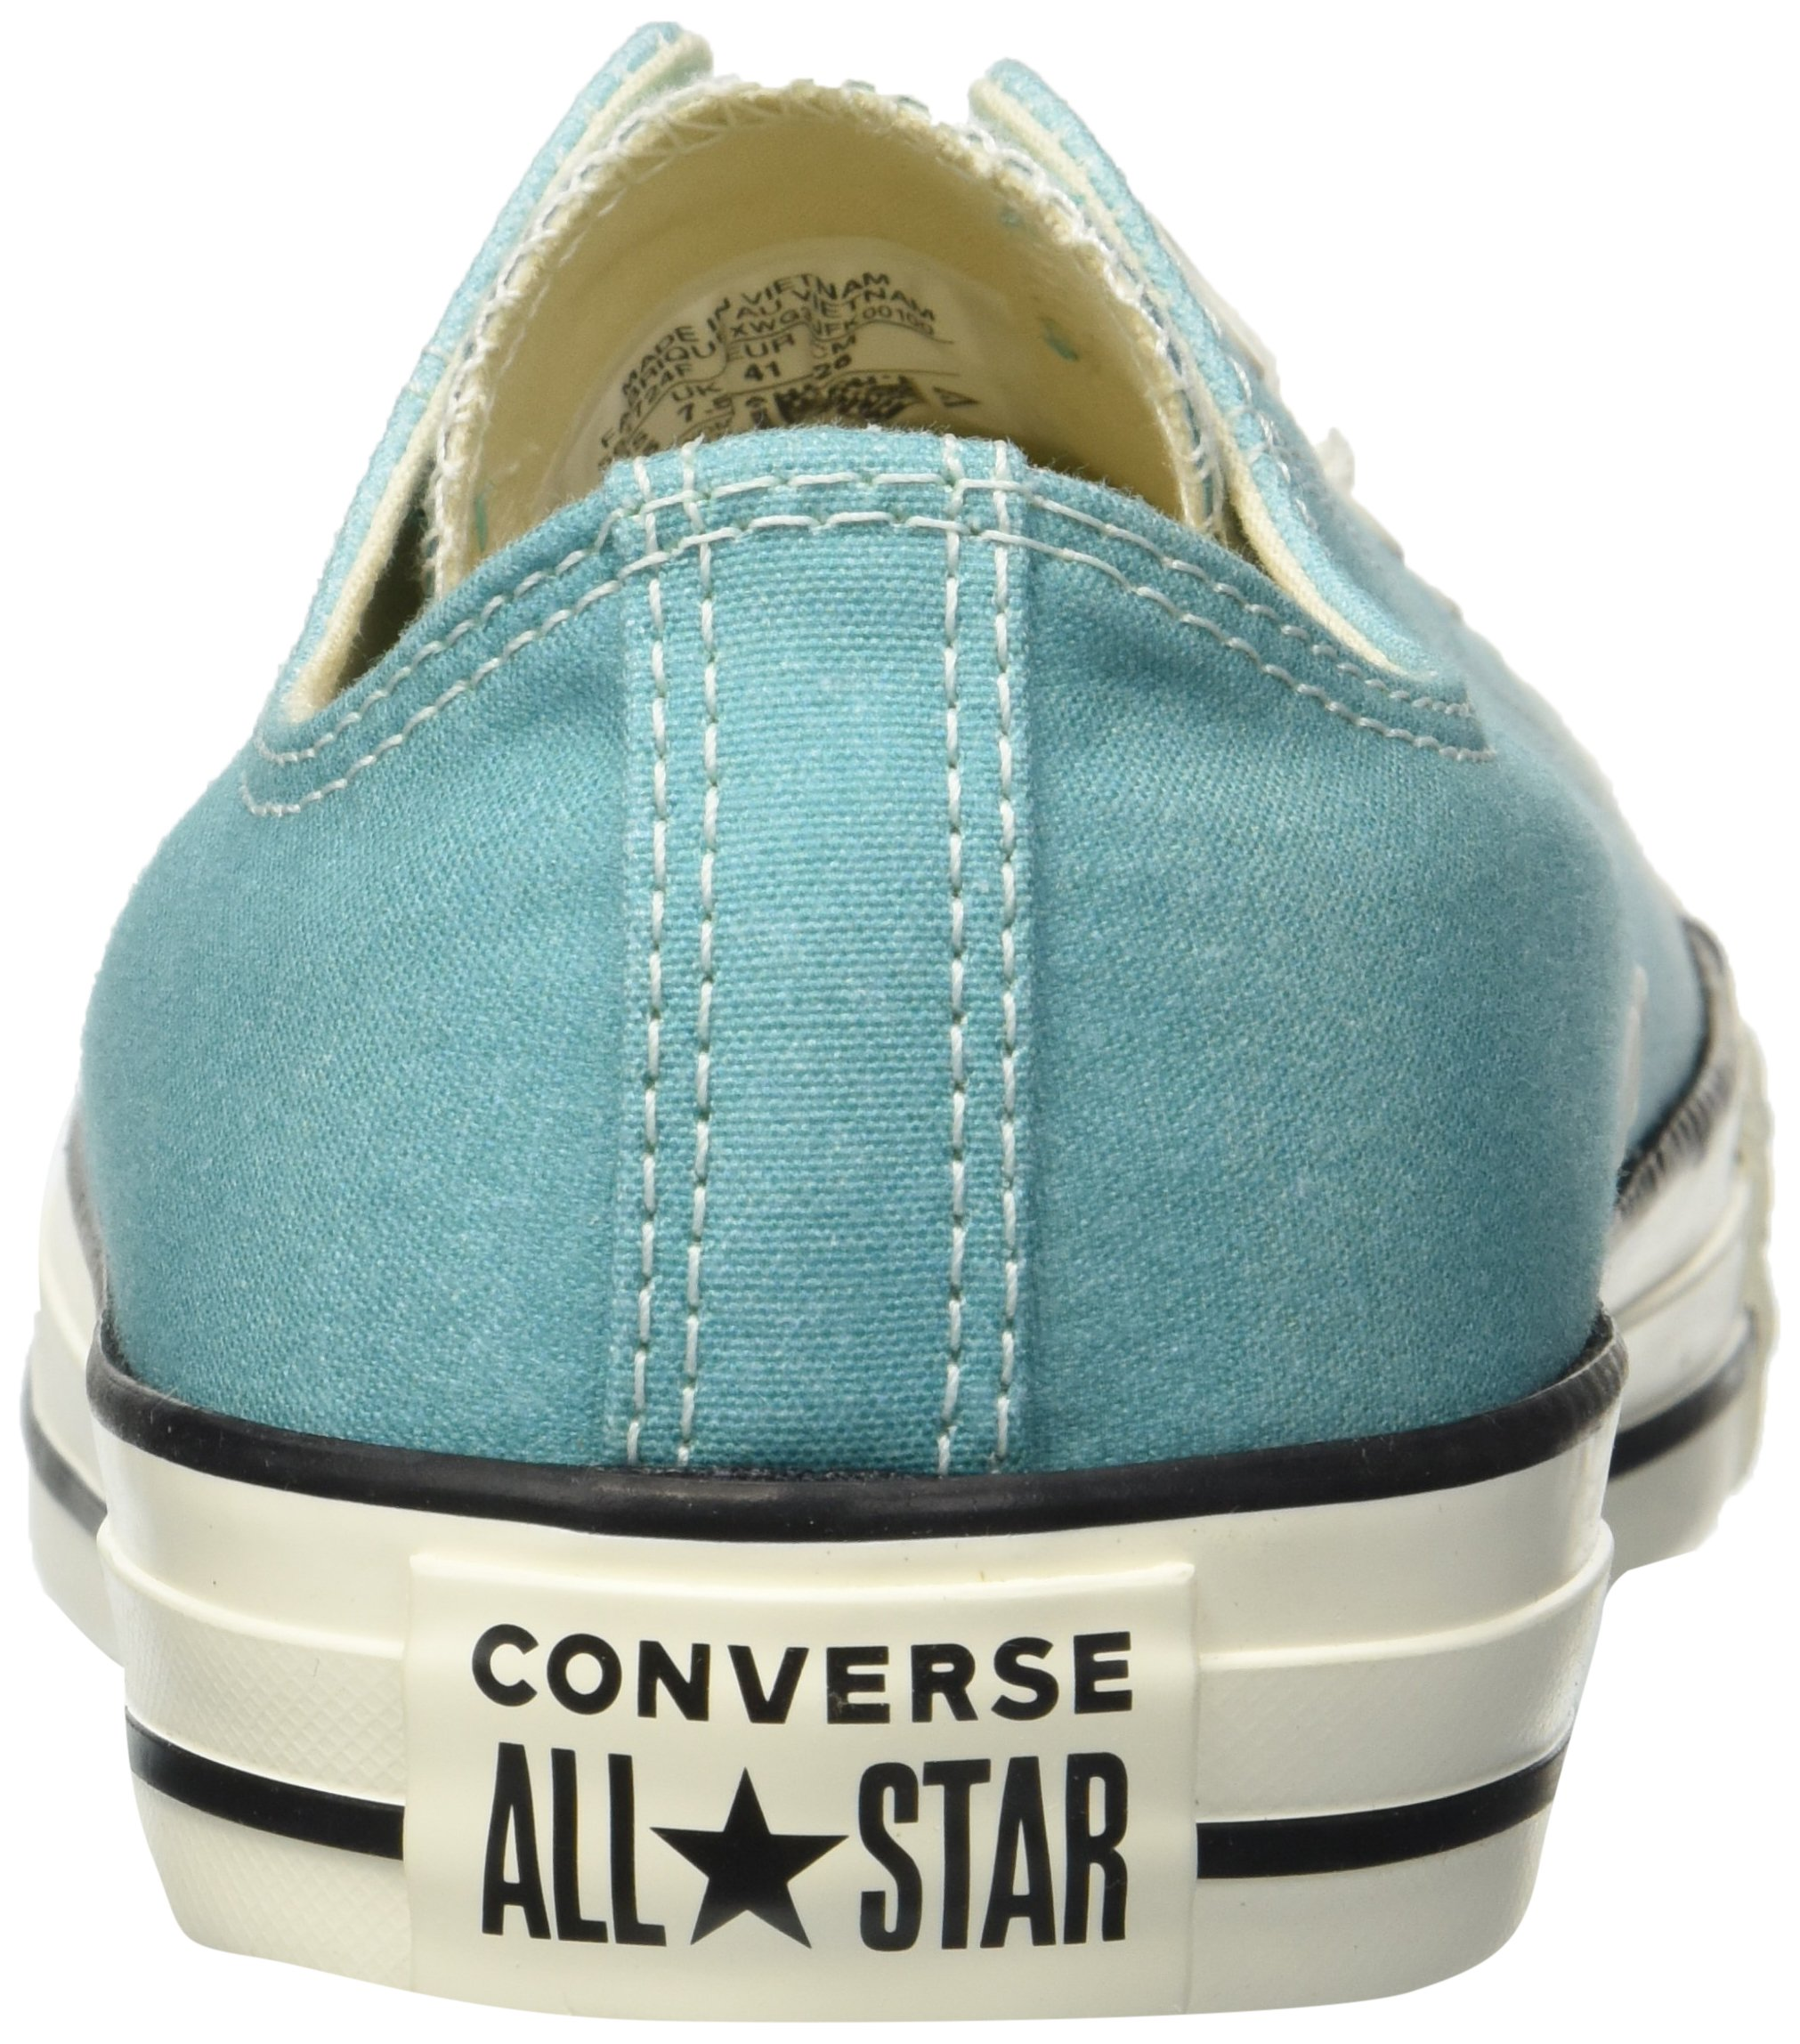 Converse Women's Chuck Taylor All Star Ombre Low TOP Sneaker, Pure Teal egret, 7.5 M US by Converse (Image #2)